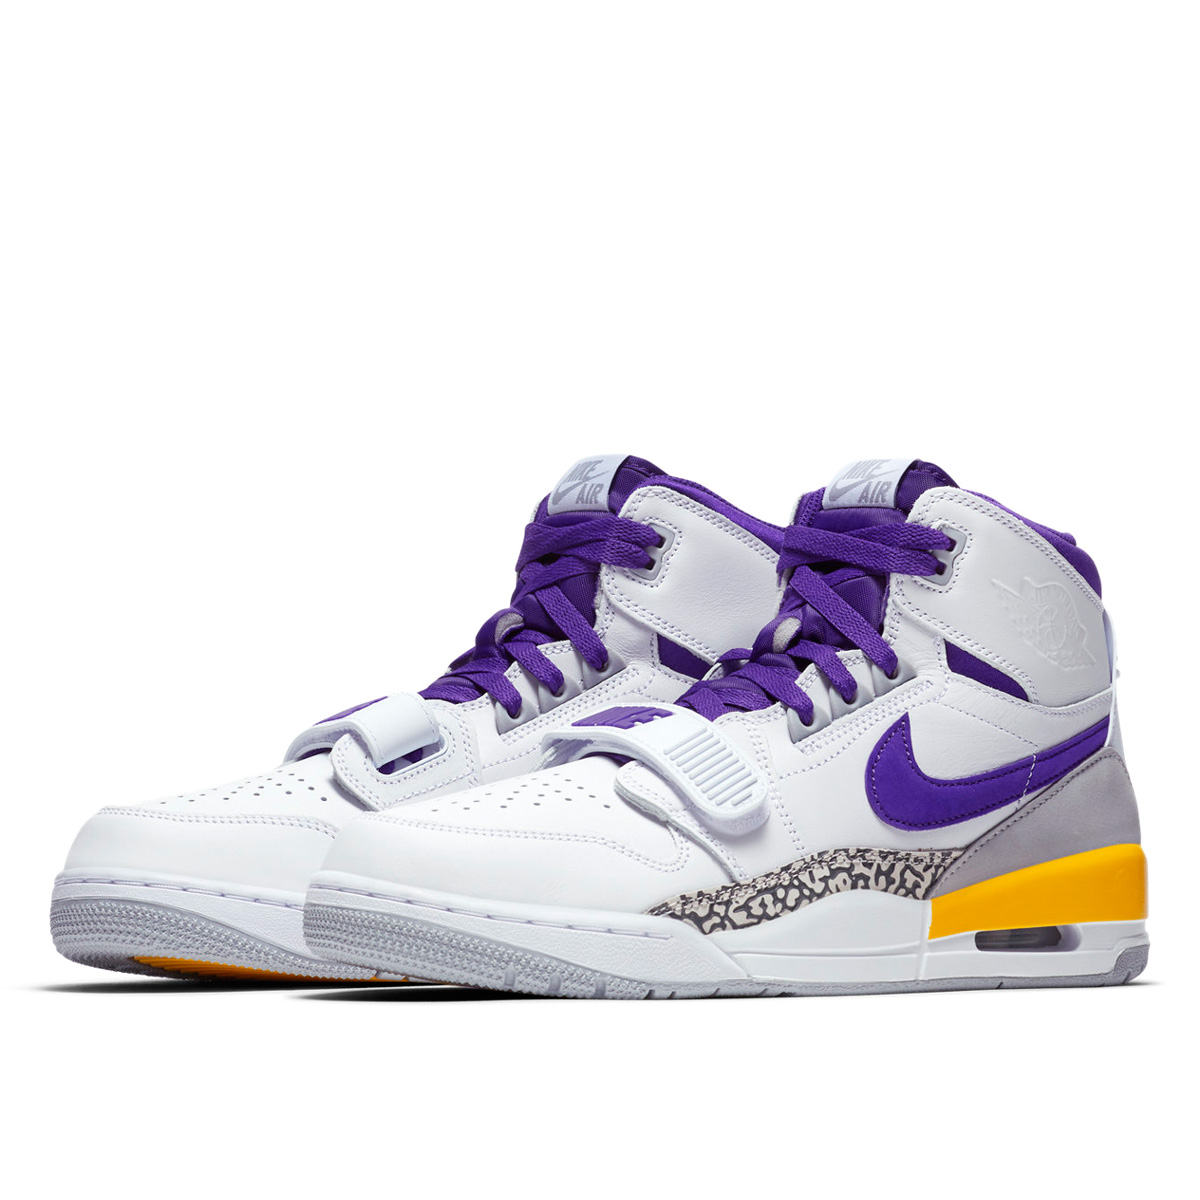 c159dad575c NIKE AIR JORDAN LEGACY 312 WHITE/FIELD PURPLE/AMARILLO av3922-157